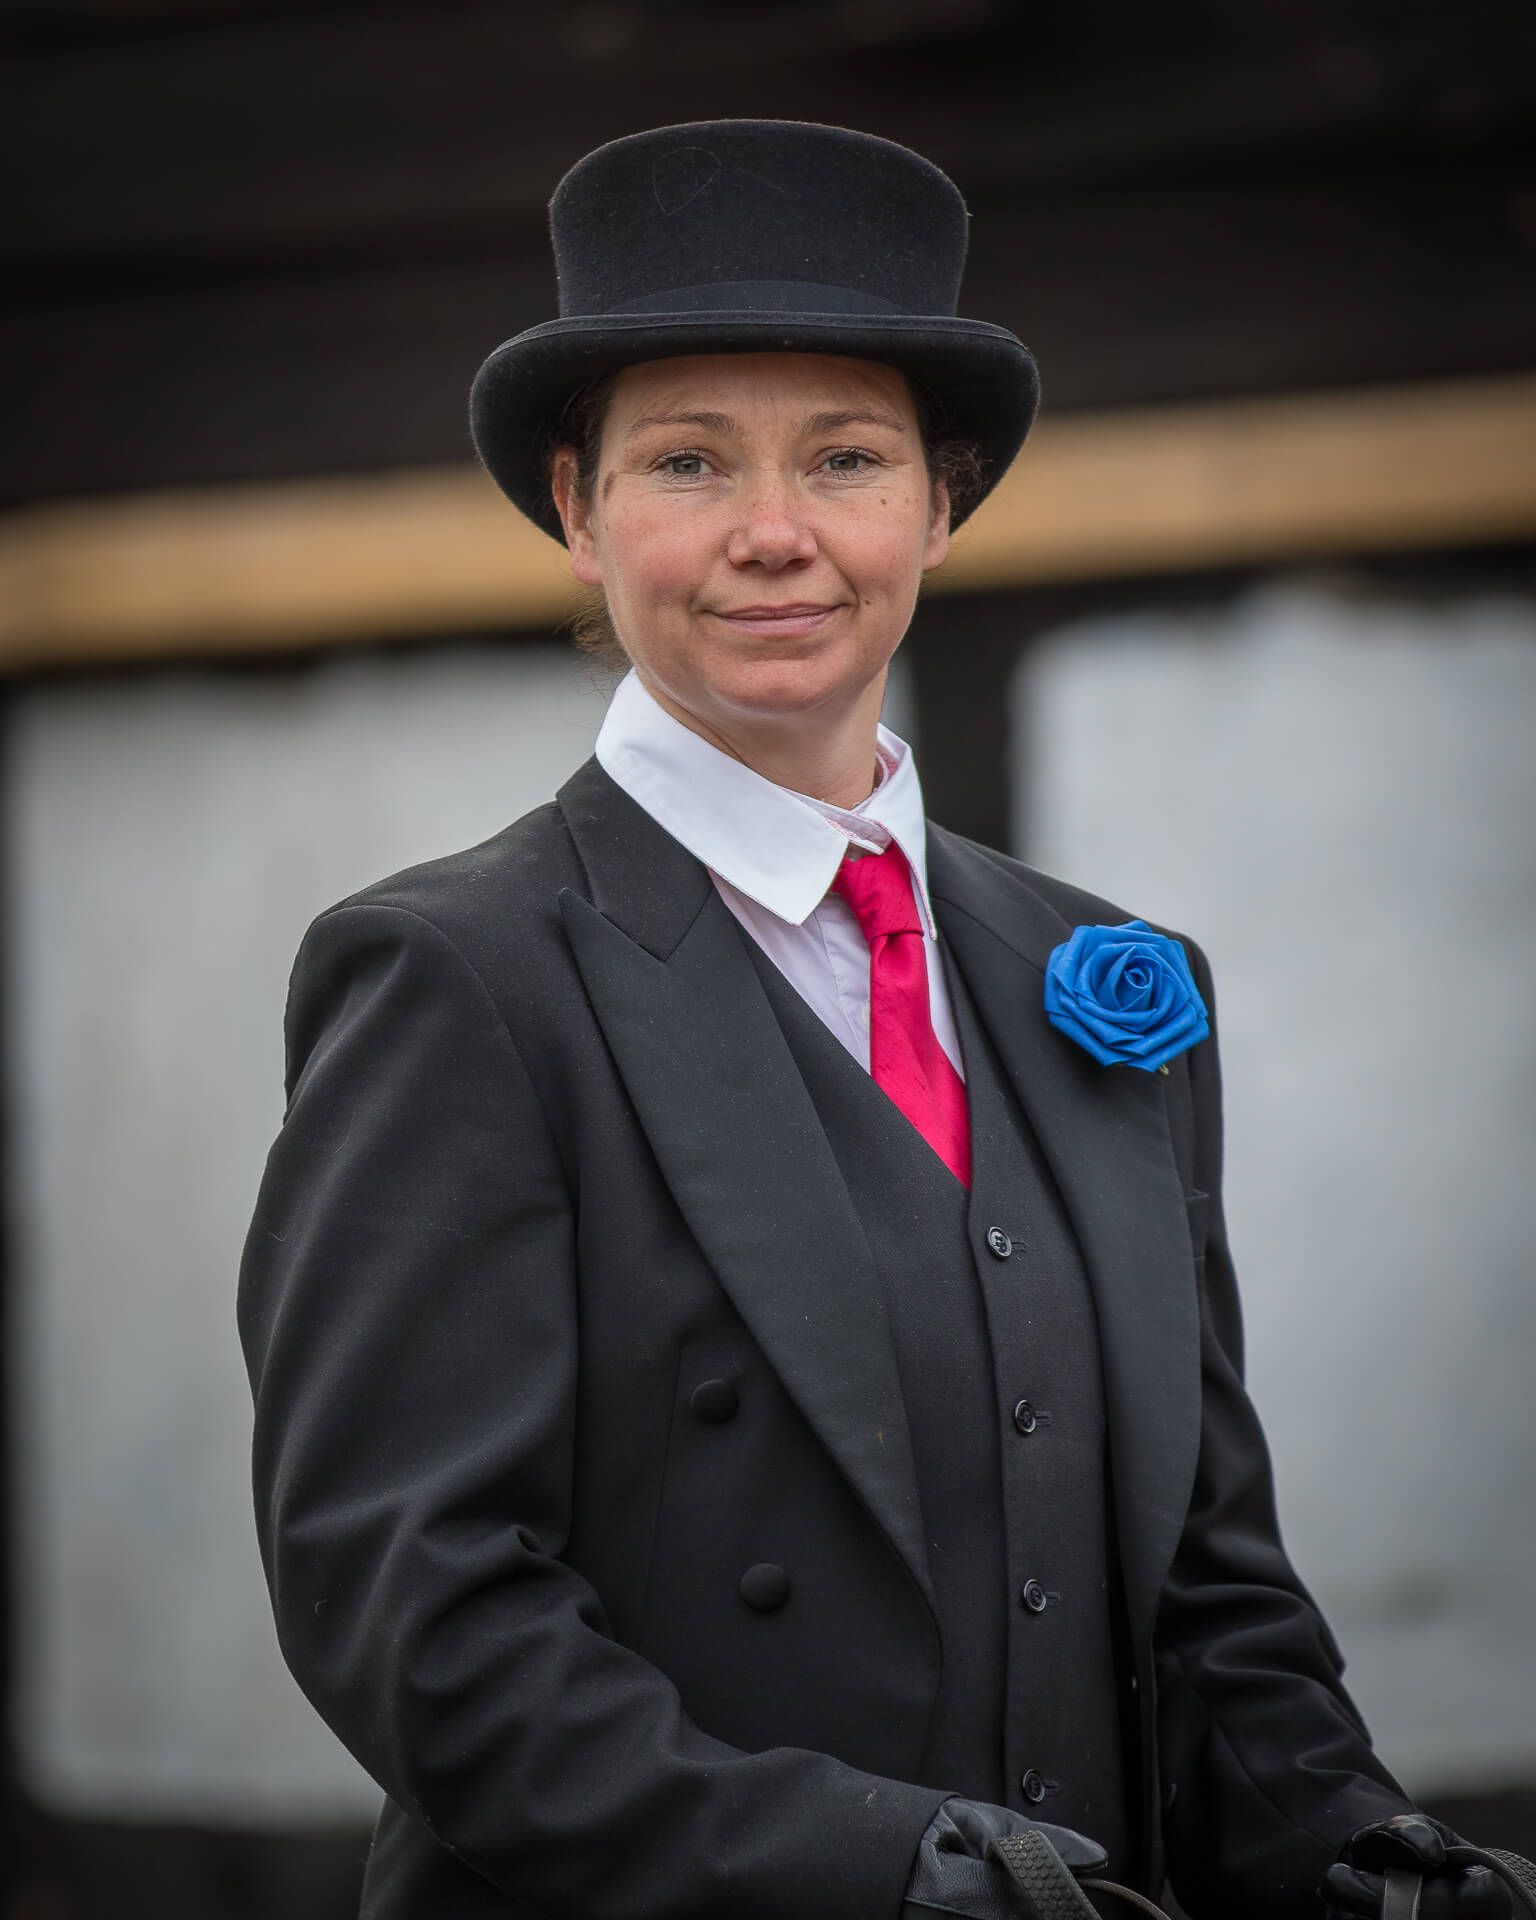 Lucy Smith of The Blackthorne Carriage Company. The Blackthorne Carriage Company is a provider of Horse Drawn Carriages for Funerals, Weddings etc. They are Worcestershire based but travel country wide. Lucy is one of their professional out riders. She is seen here, looking straight at the camera, in a colour waist up shot as she prepares for a funeral. She wears traditional attire along with a red tie, and a blue button hole flower.